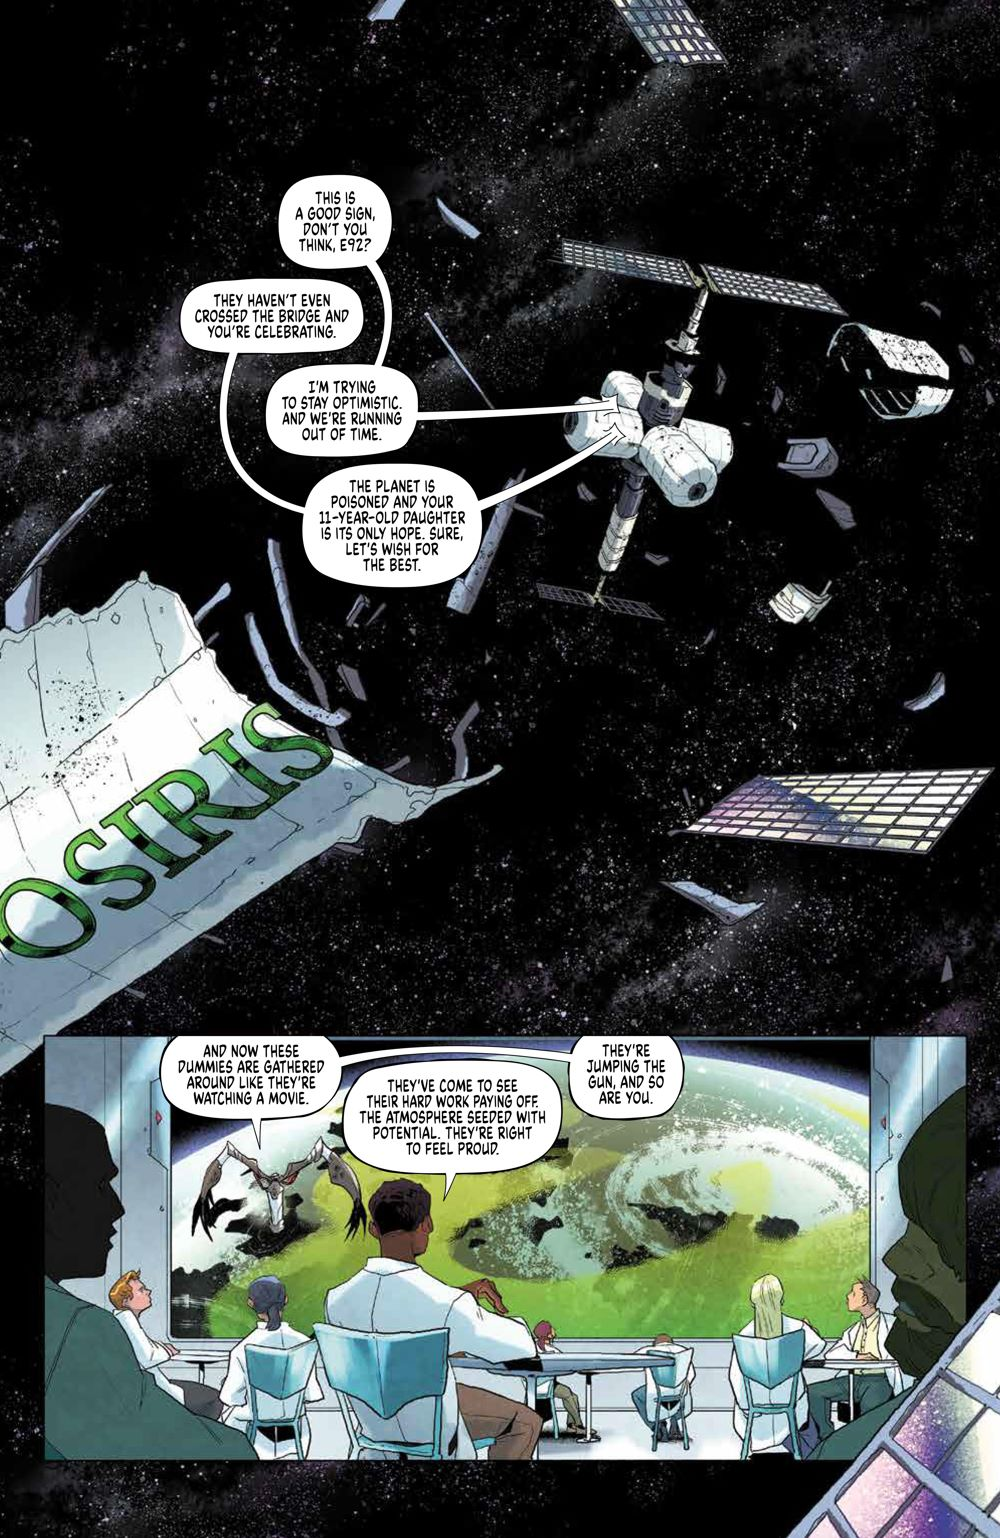 Eve_003_PRESS_8 ComicList Previews: EVE #3 (OF 5)